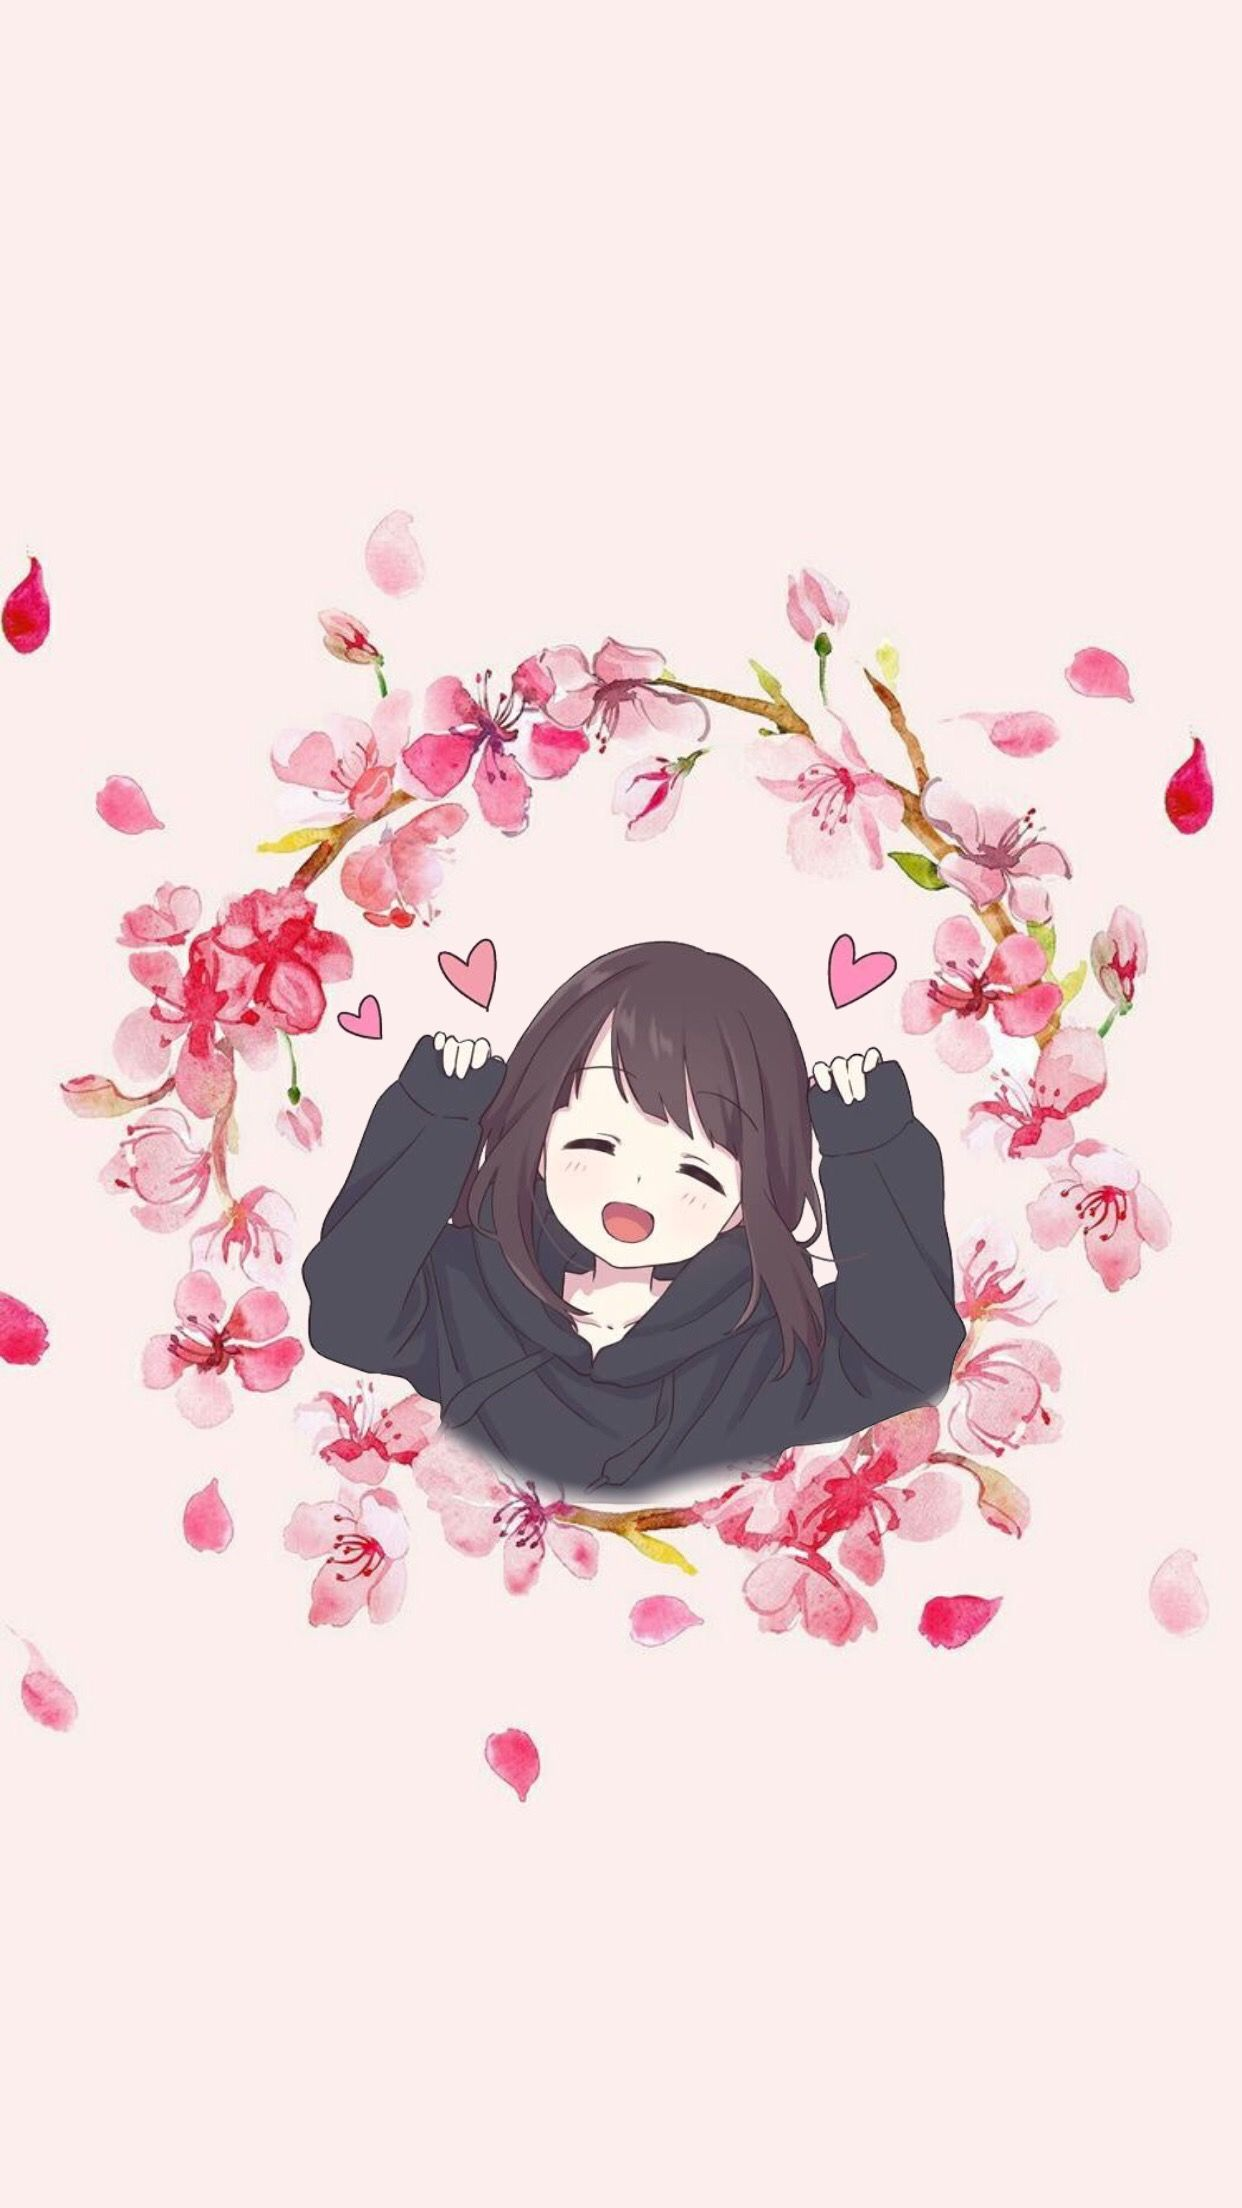 Anime Icon My Highlights Insta Icon Cute Doodles Instagram Highlight Icons Anime